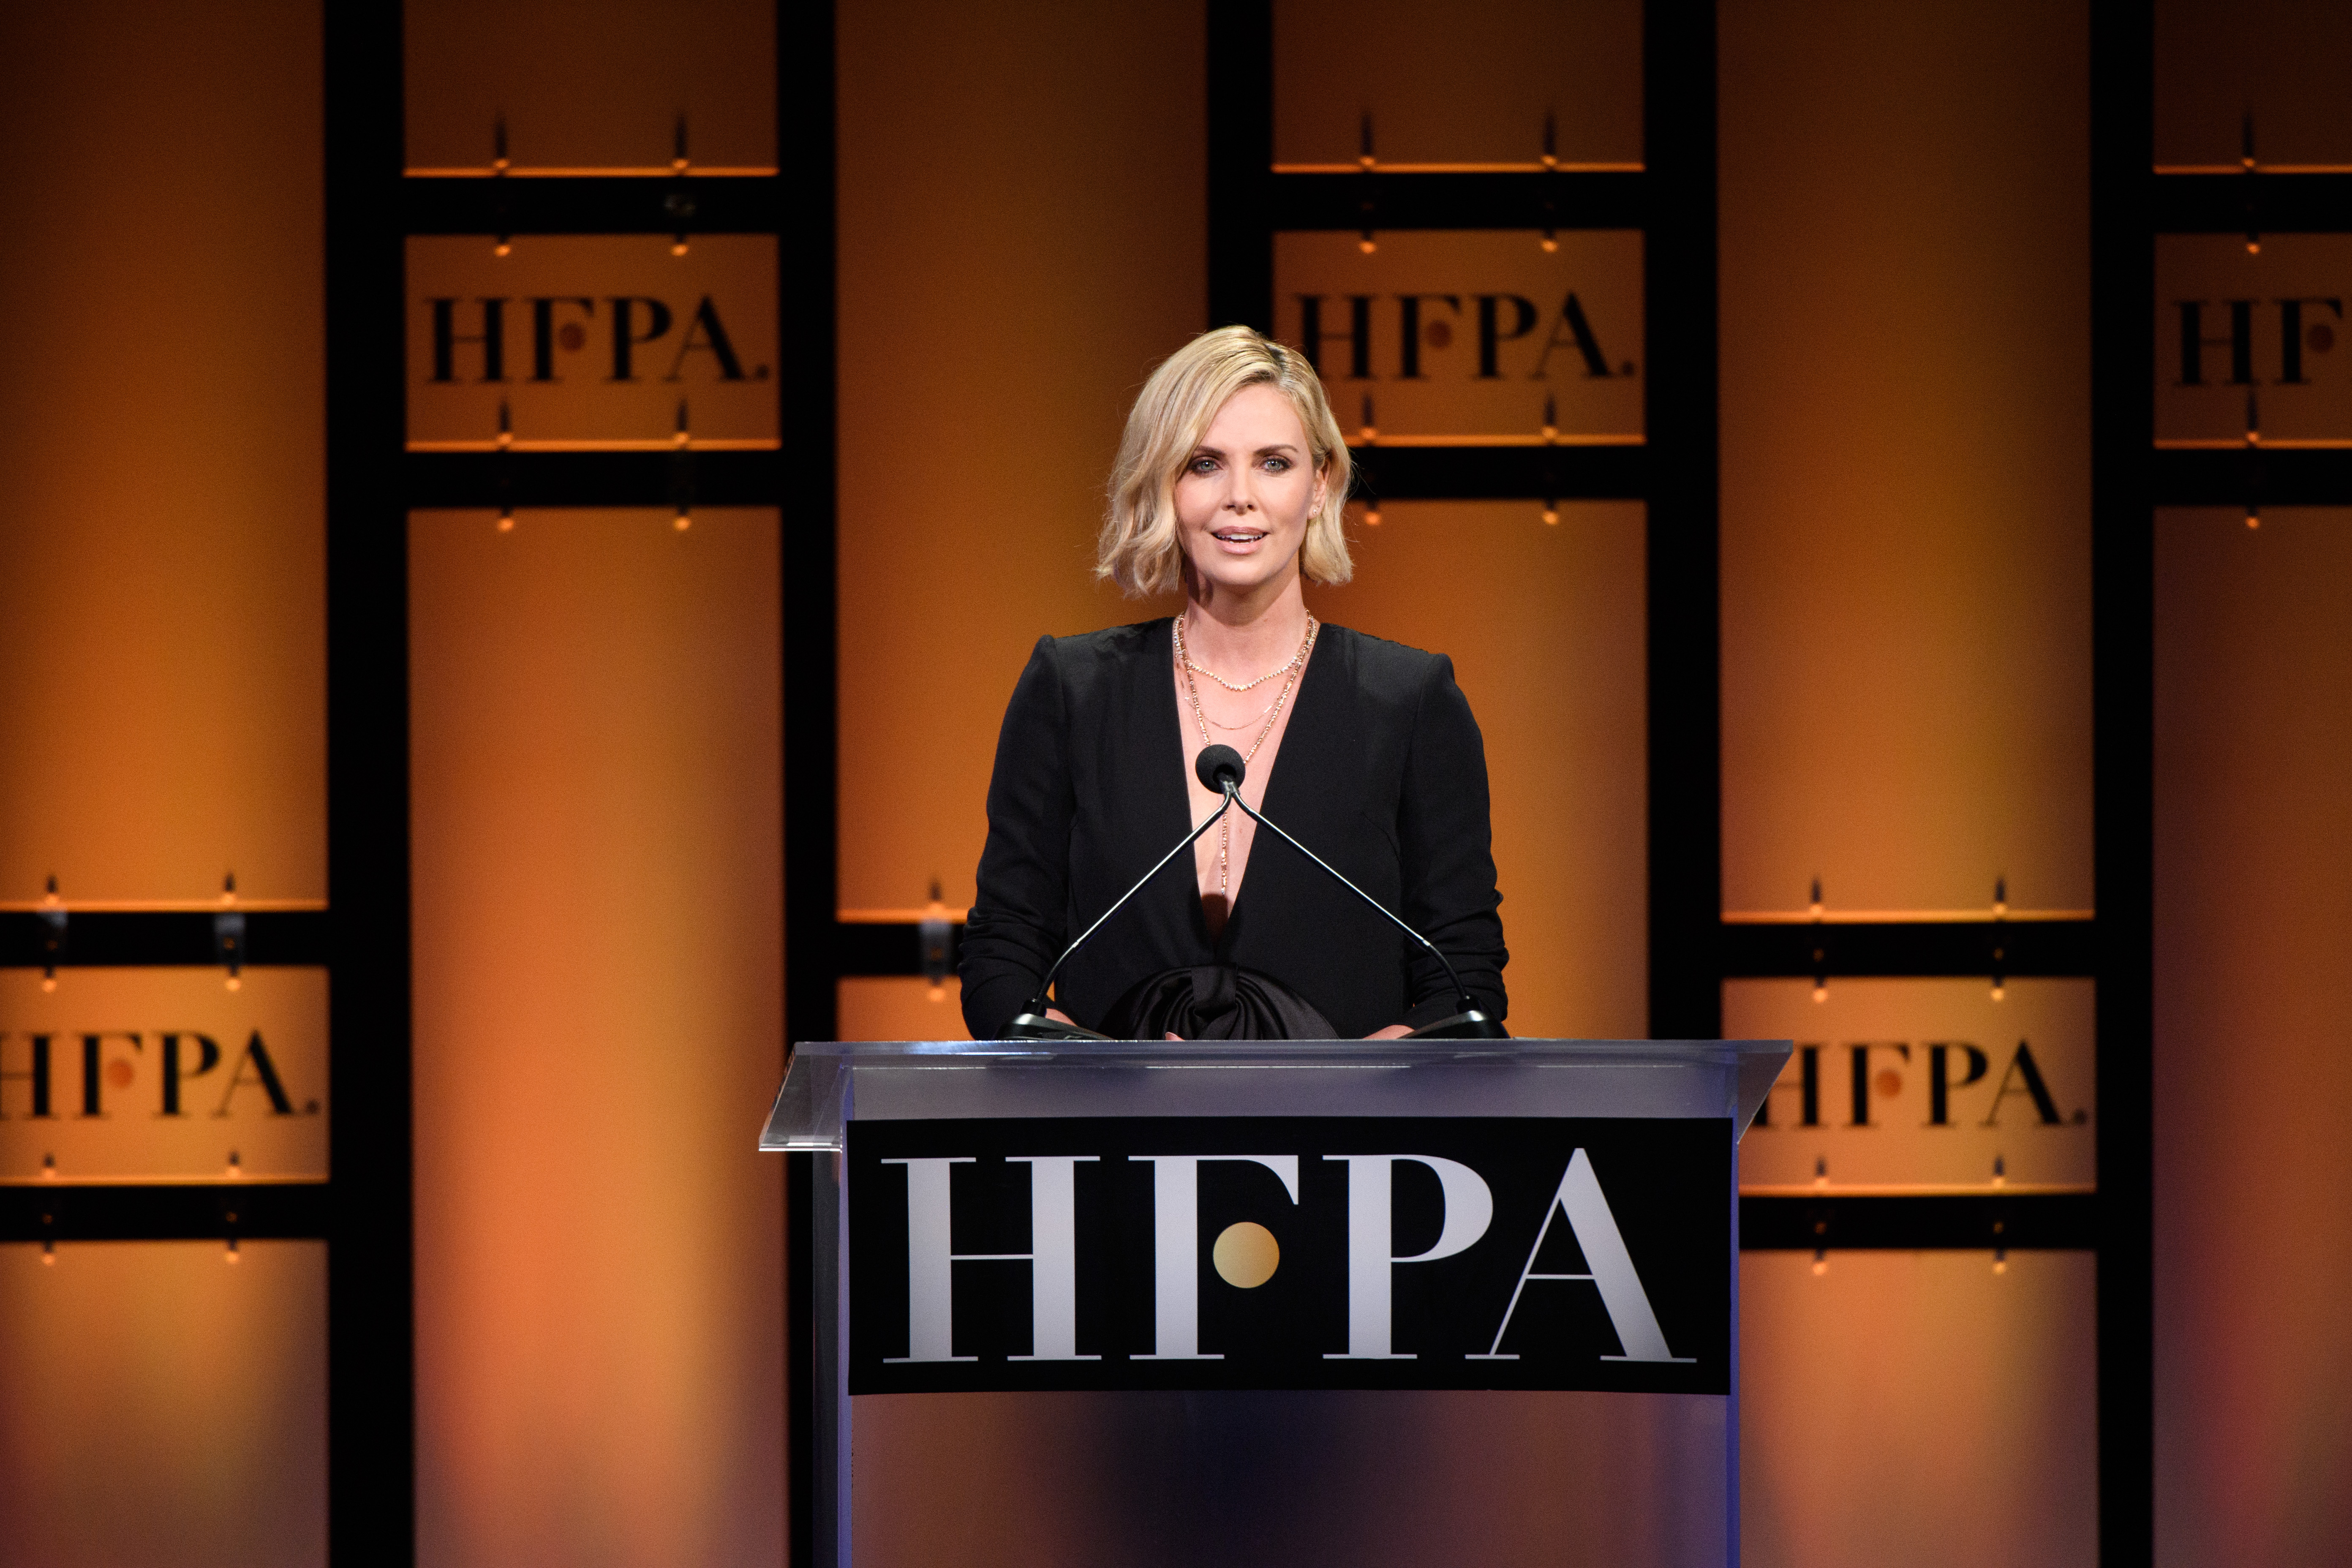 The HFPA brought together a group of overseas journalists who were receiving no recognition on the American soil. (HFPA)